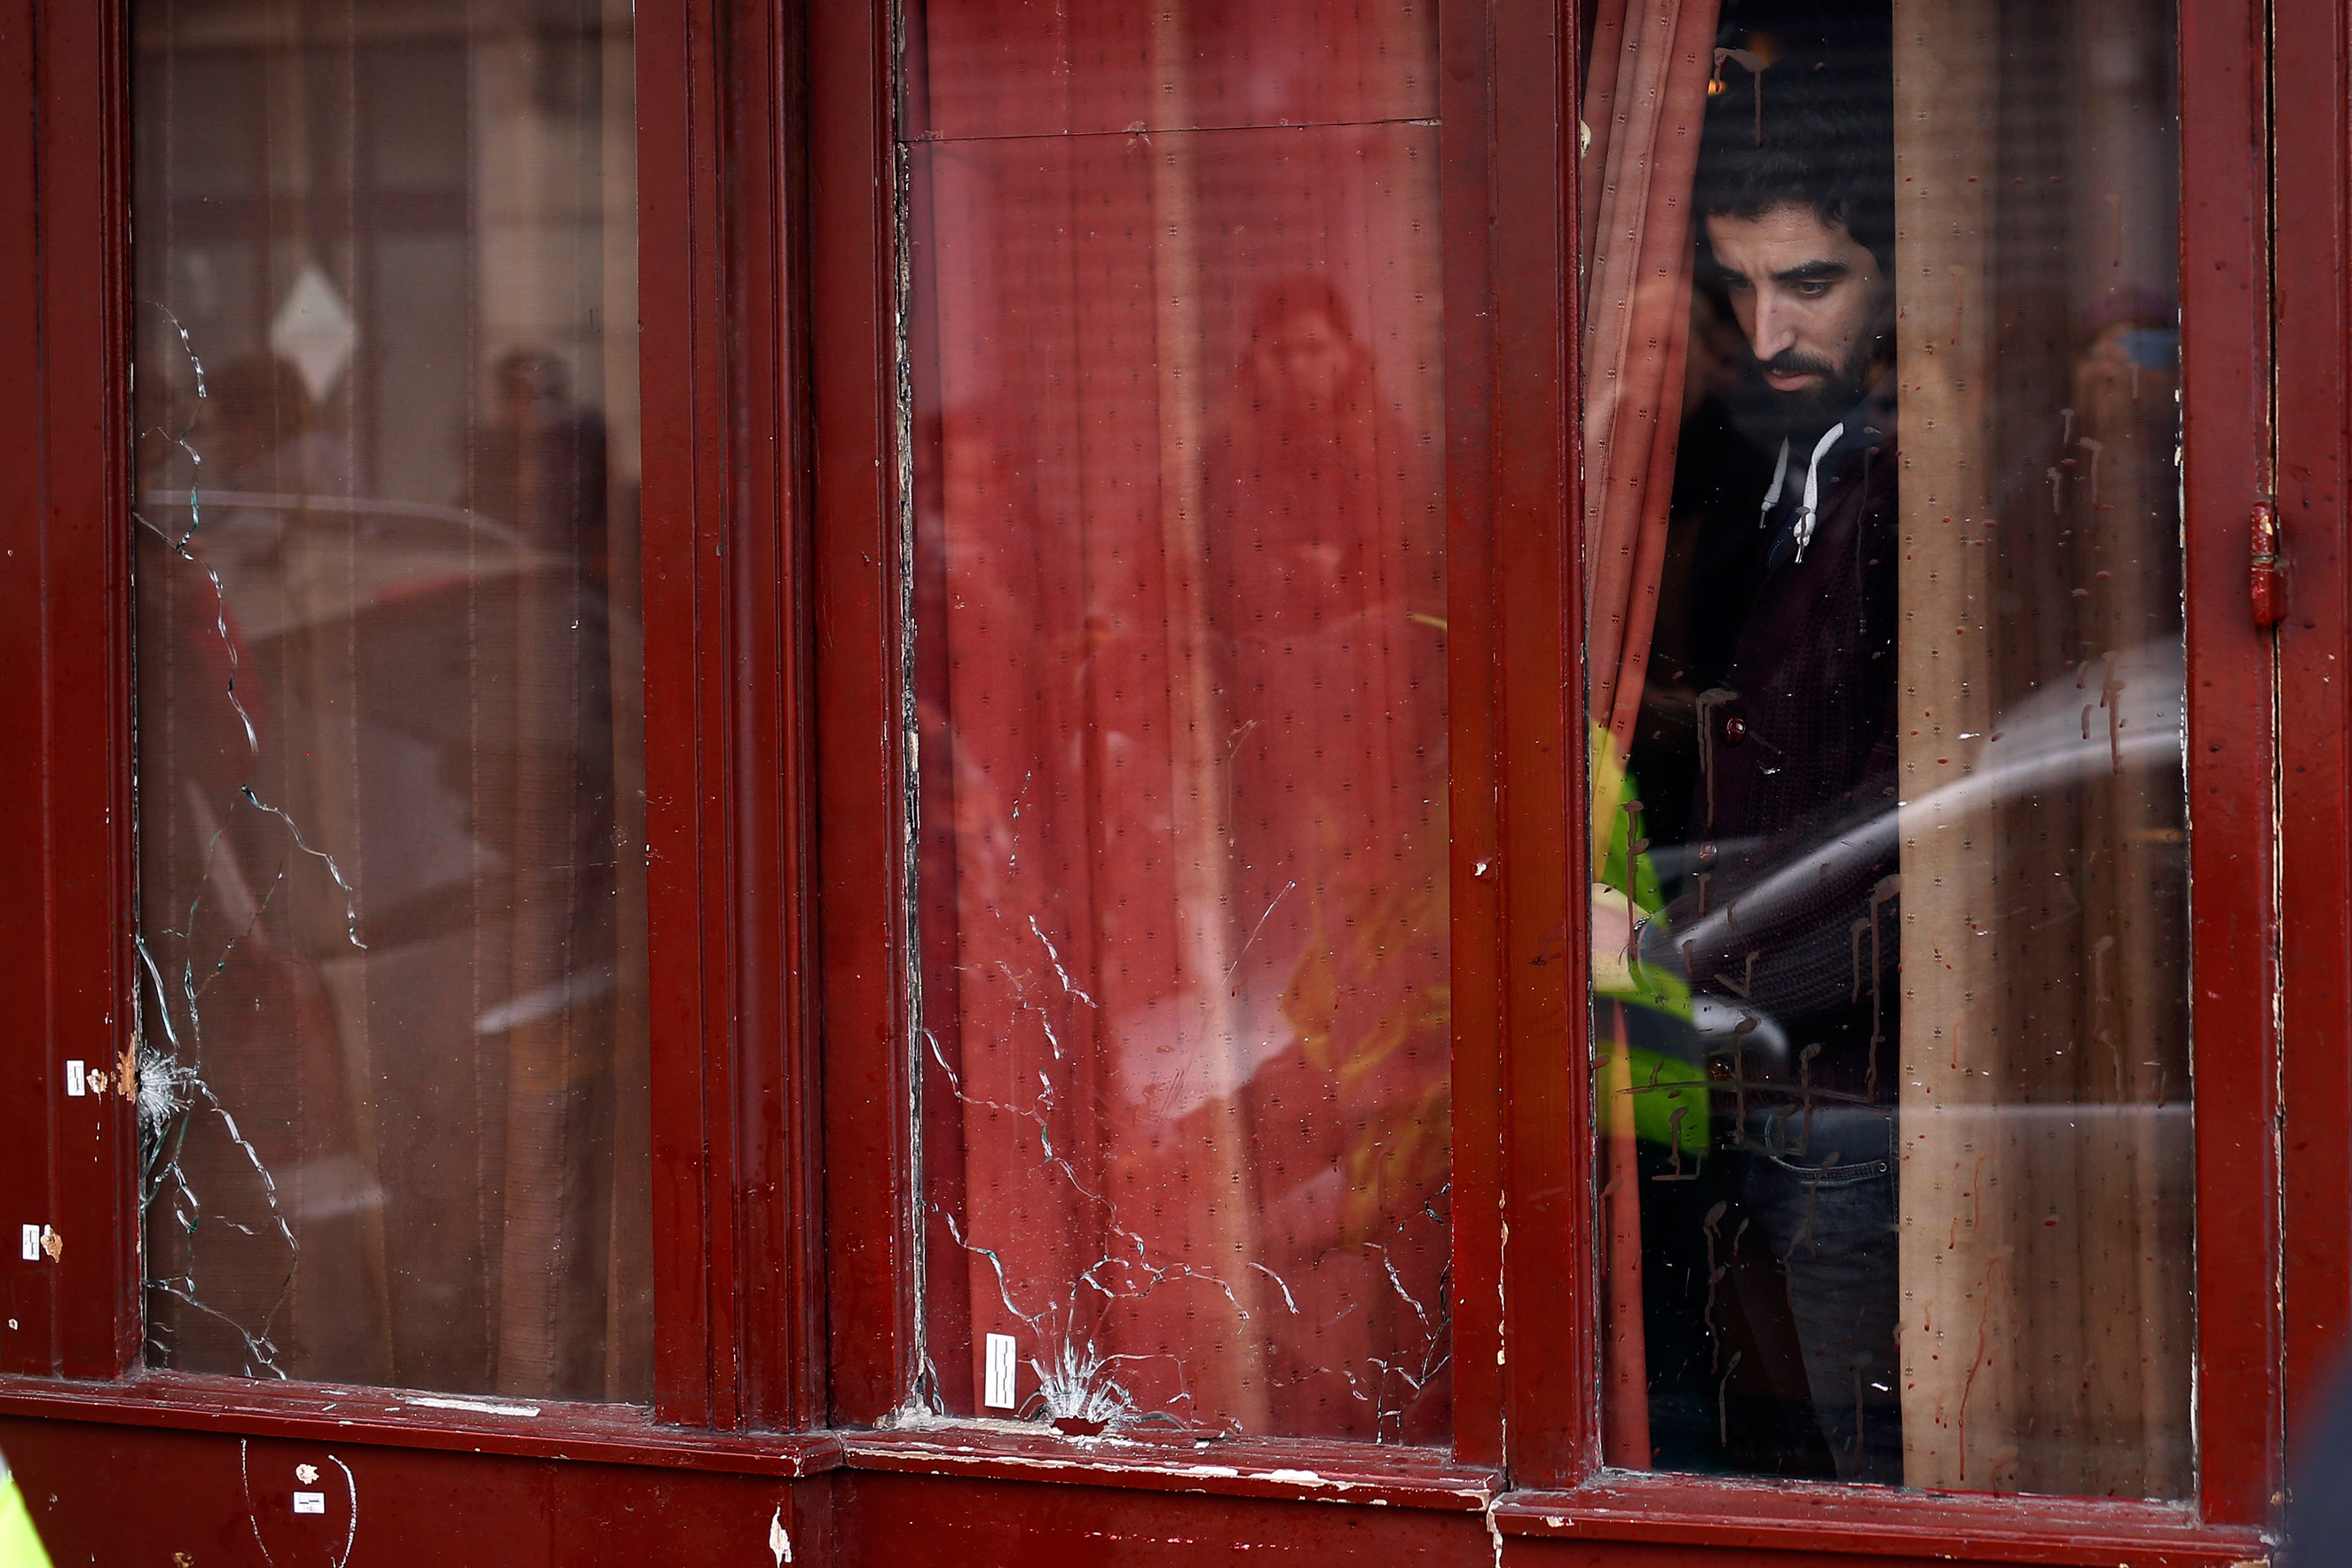 A man looks out the bullet ridden windows of the Carillon cafe in Paris on Nov. 14, 2015.